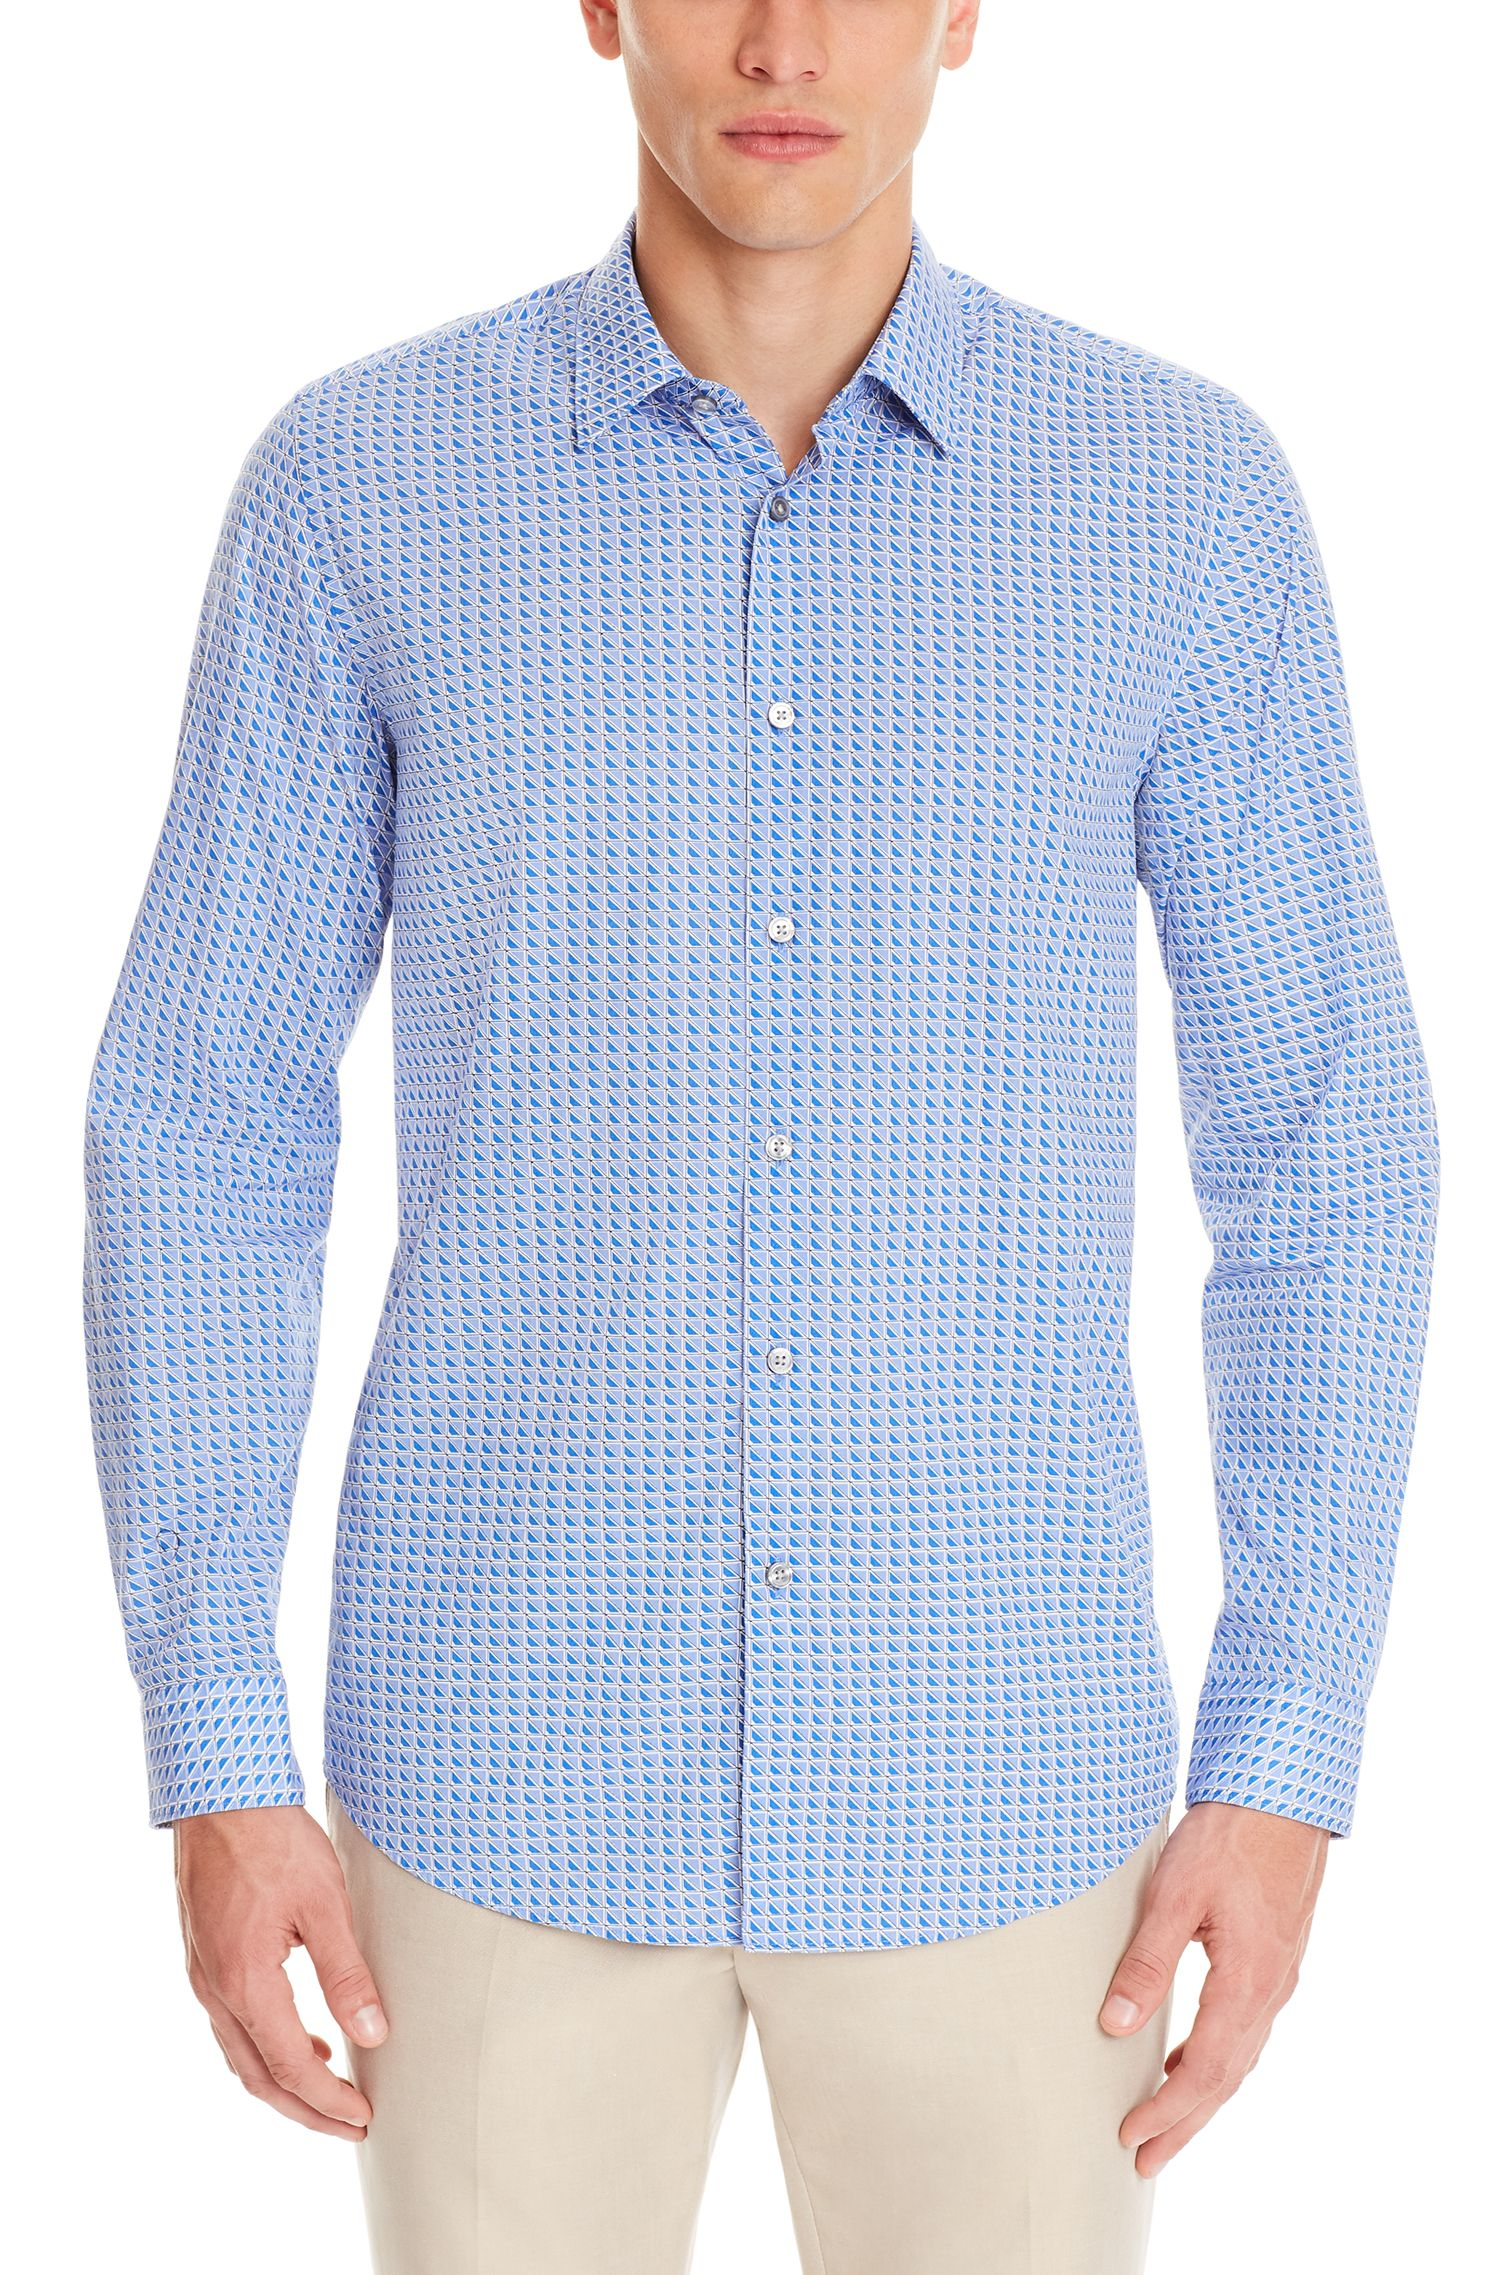 Cotton Button Down Shirt, Regular FIt | Lukas F